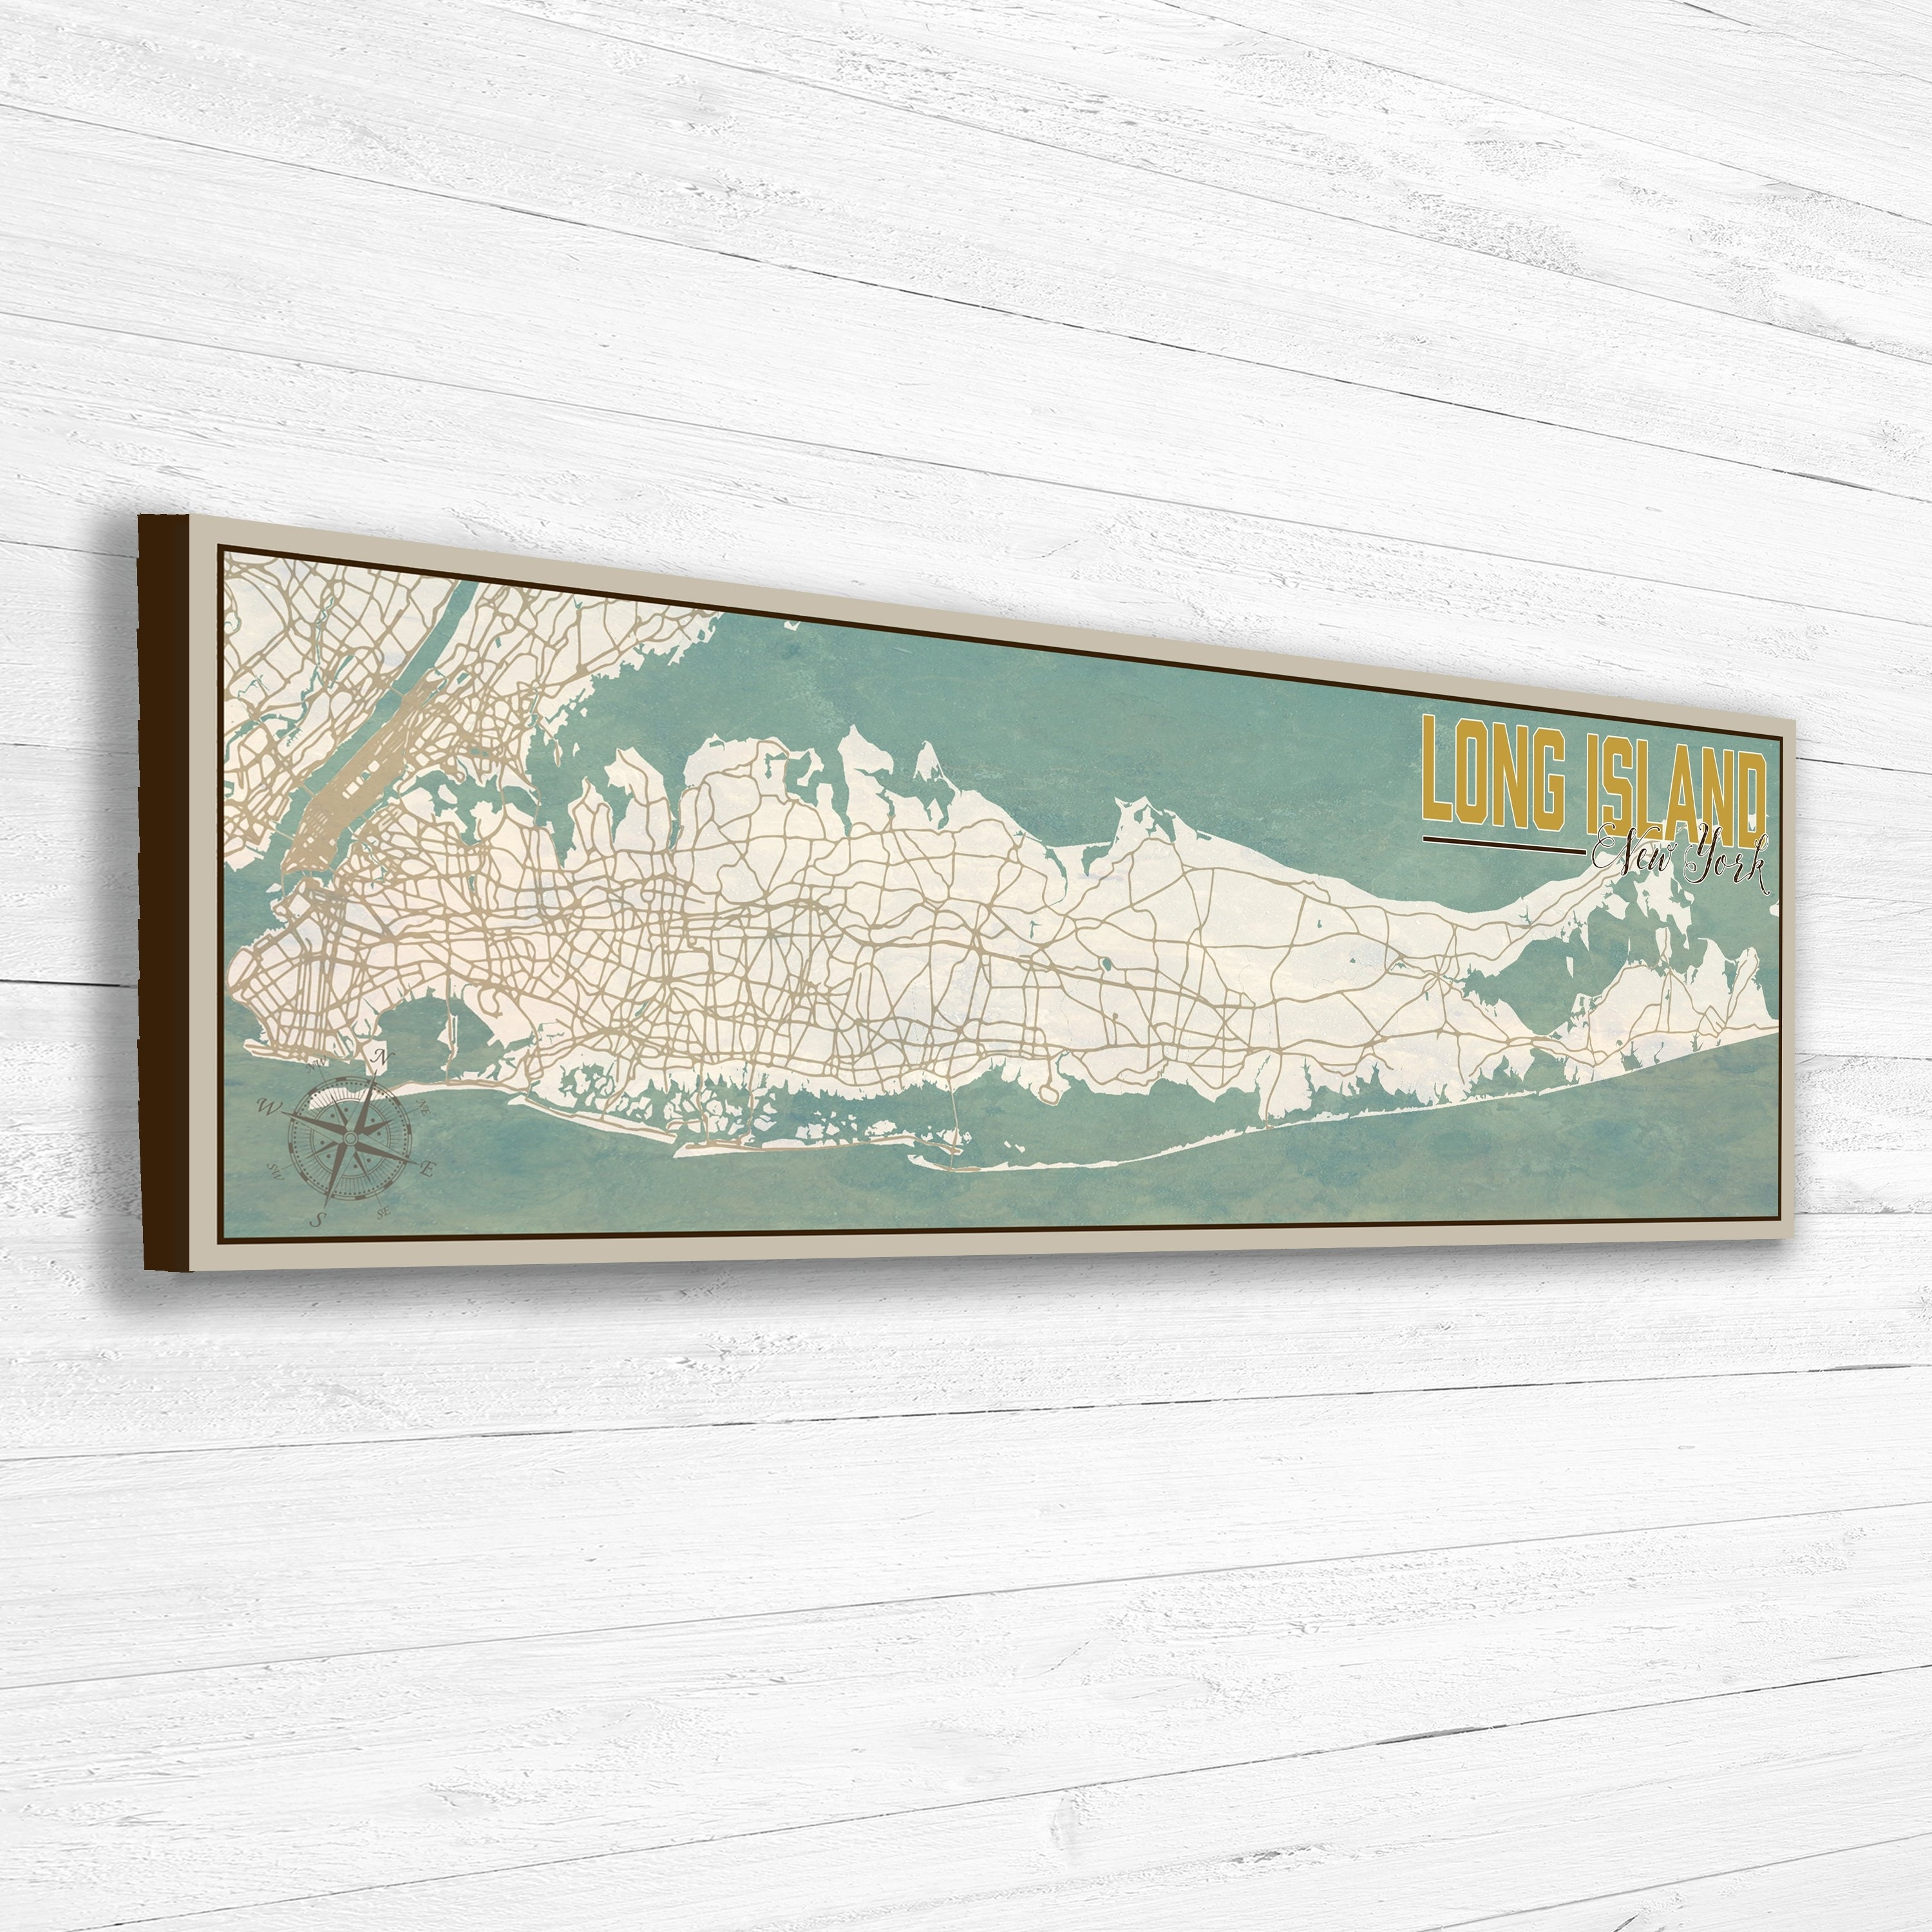 Long Island Ny Wall Art Map Framed North Fork Vintage Outdoor Inside 2018 Long Island Wall Art (View 11 of 20)